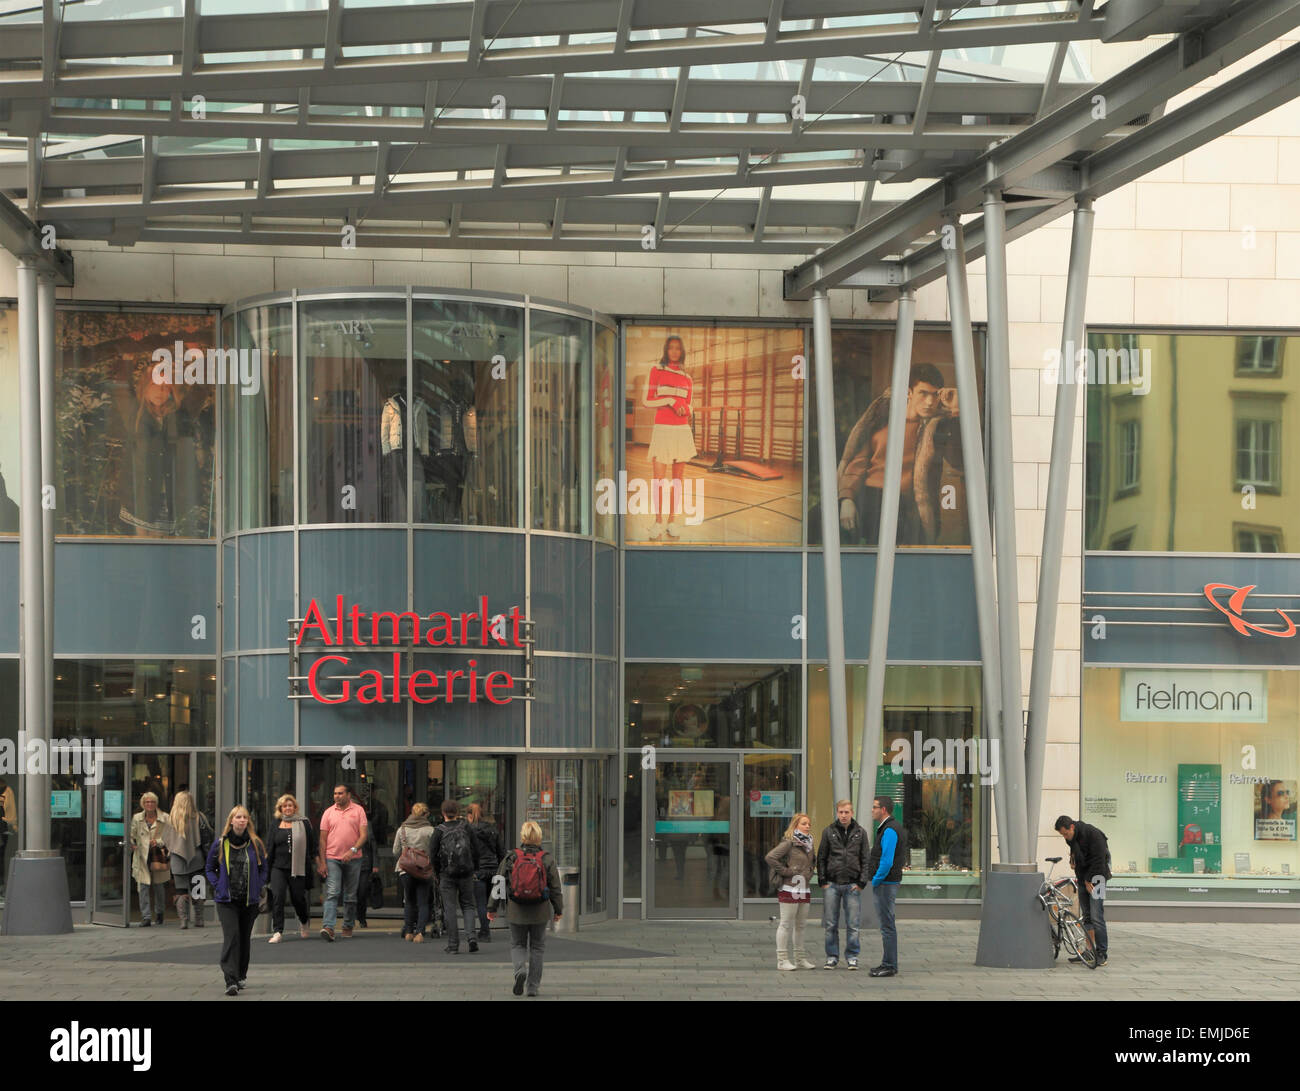 Germany Saxony Dresden Altmarkt Galerie Shopping Mall People Stock Photo Alamy